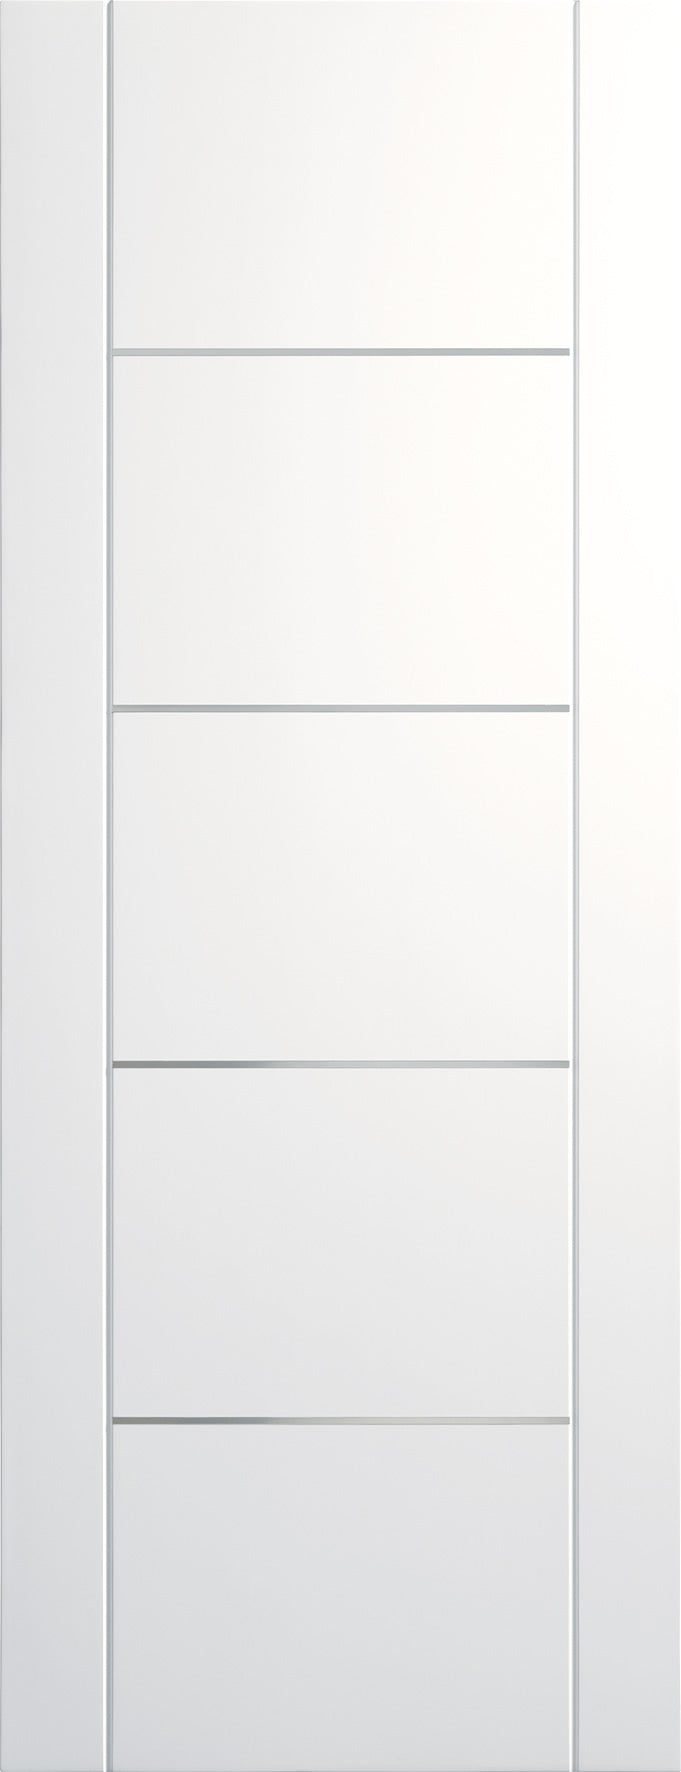 Portici white prefinished internal door with aluminium inlays.